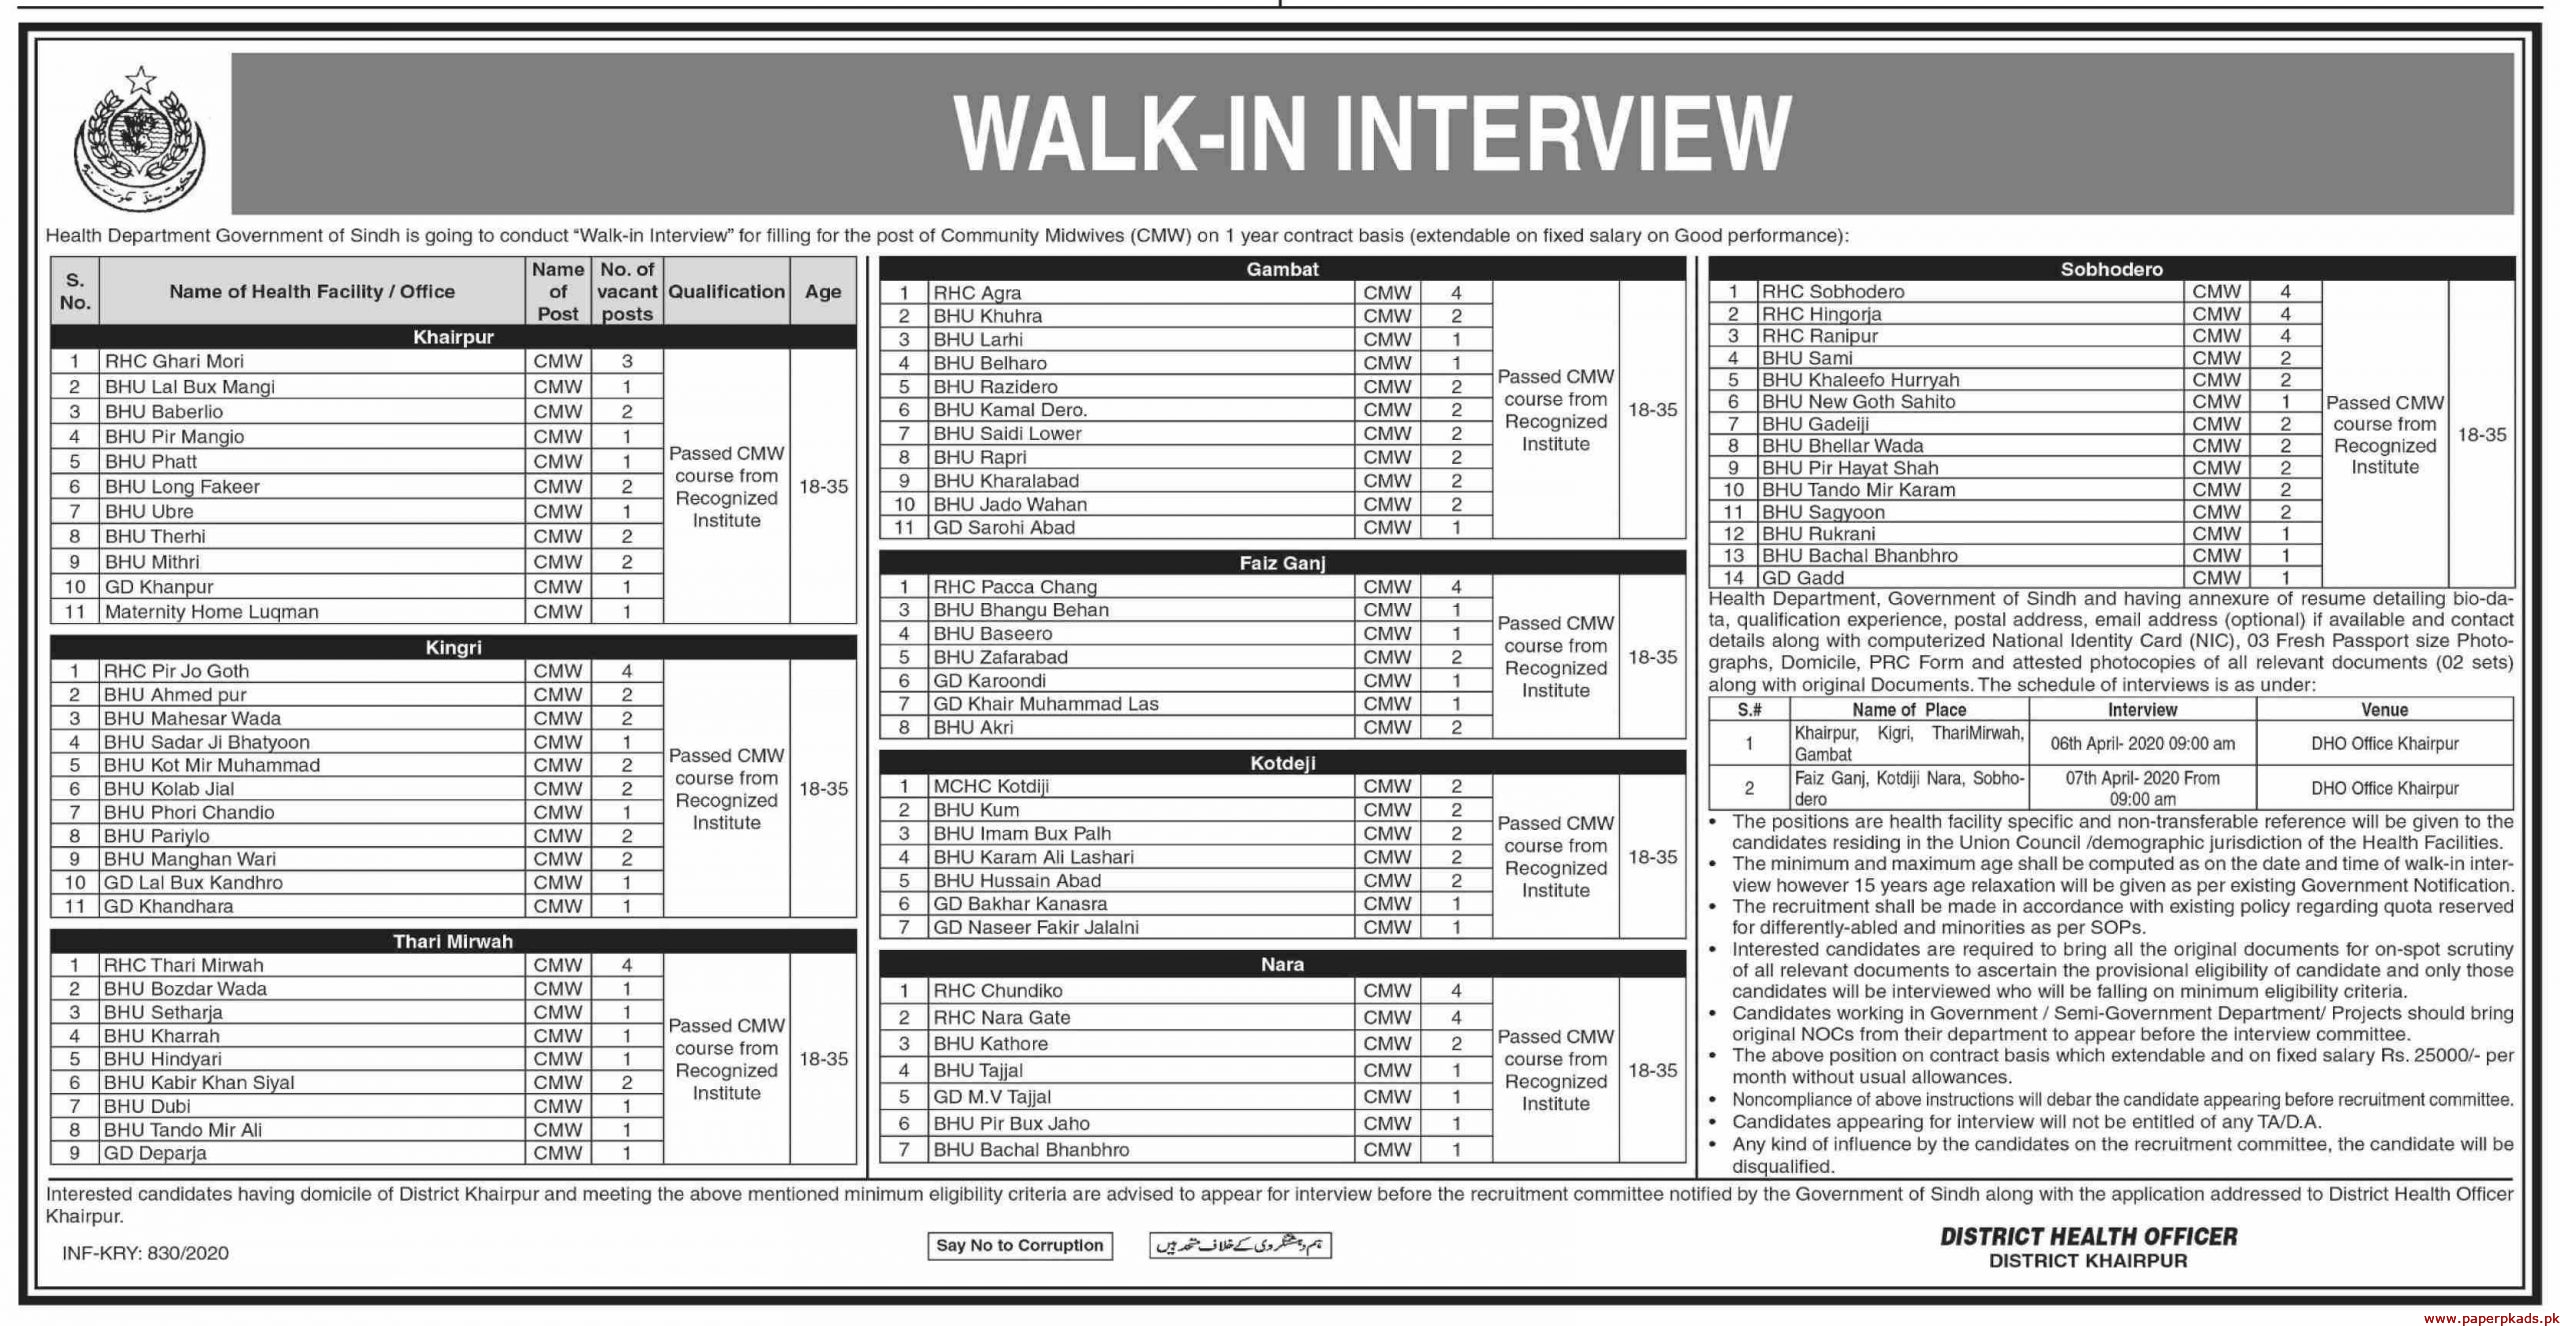 Health Department Government of Sindh Jobs 2020 Latest